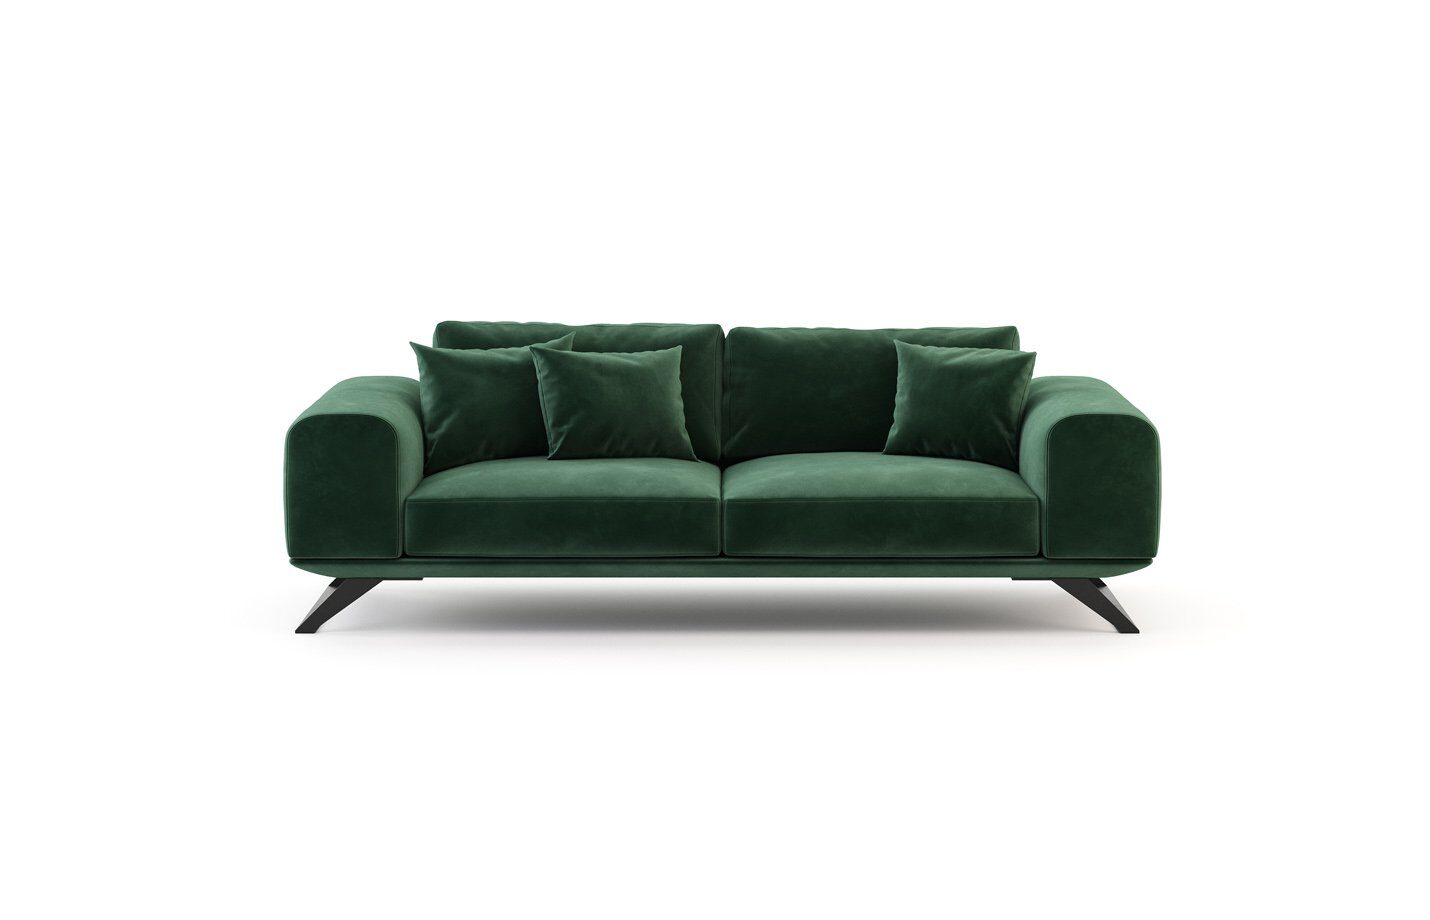 Florence-Sofa-by-fabiia-furniture-signature-1